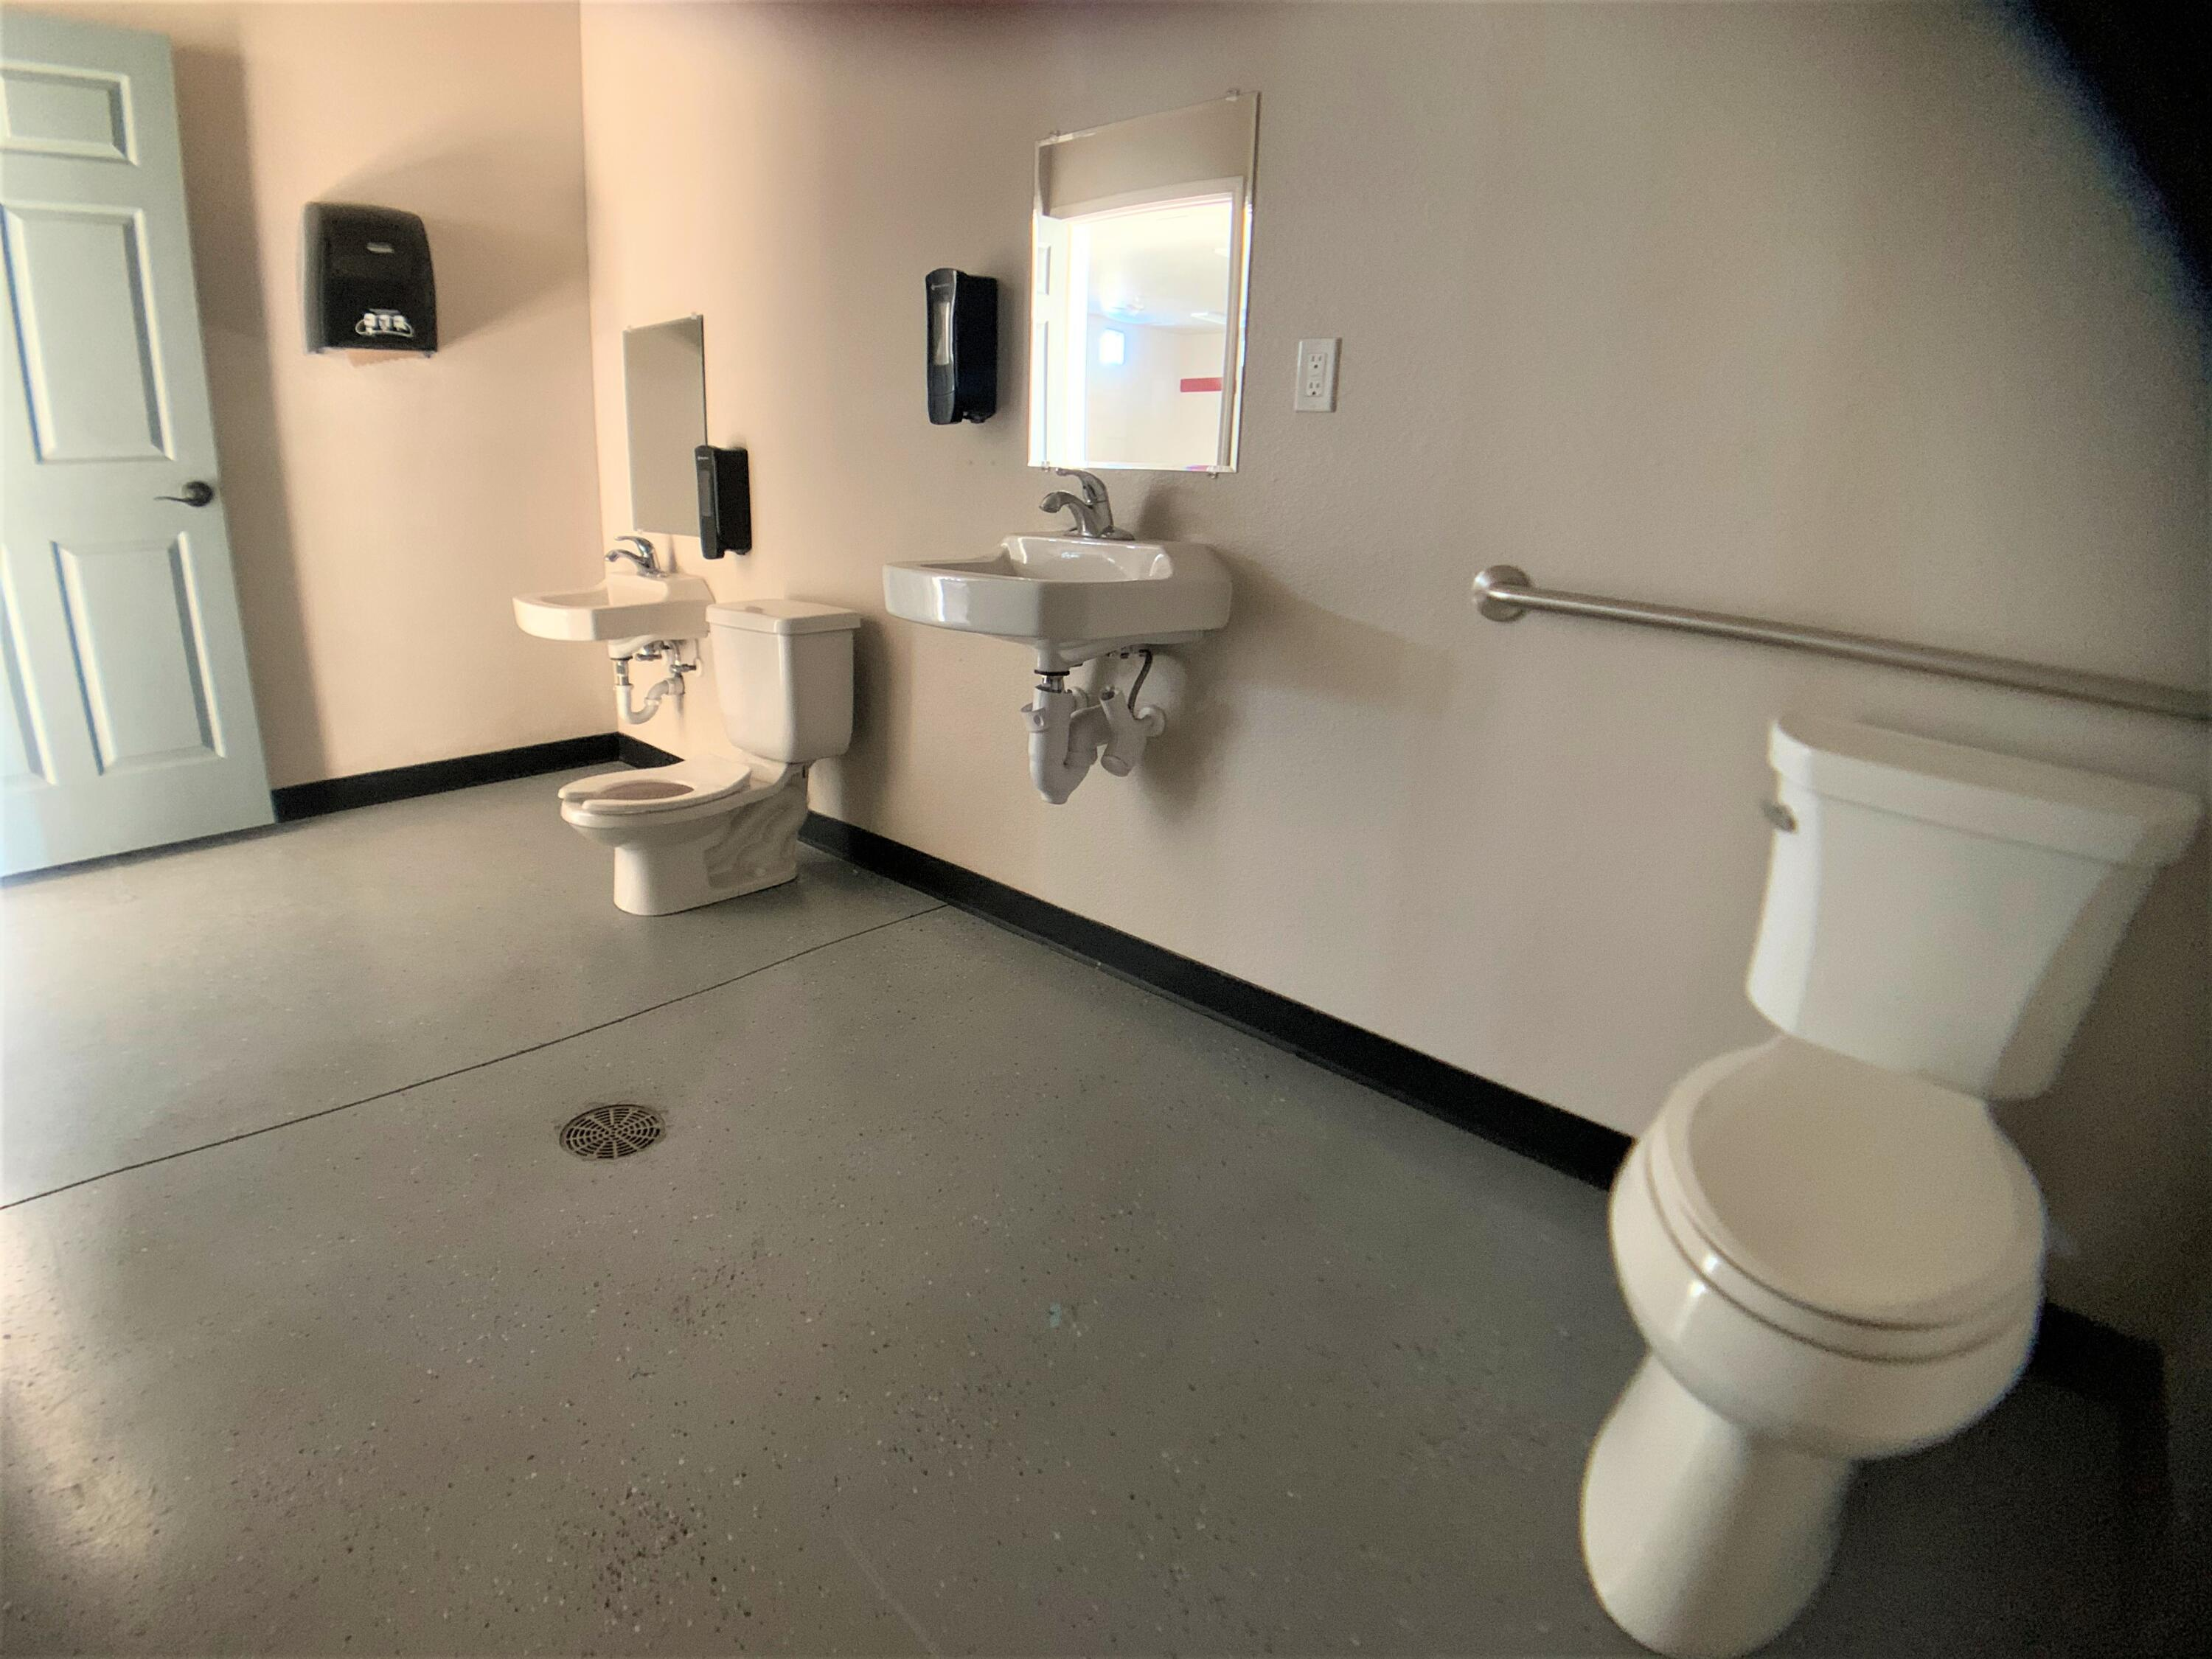 middle rest room